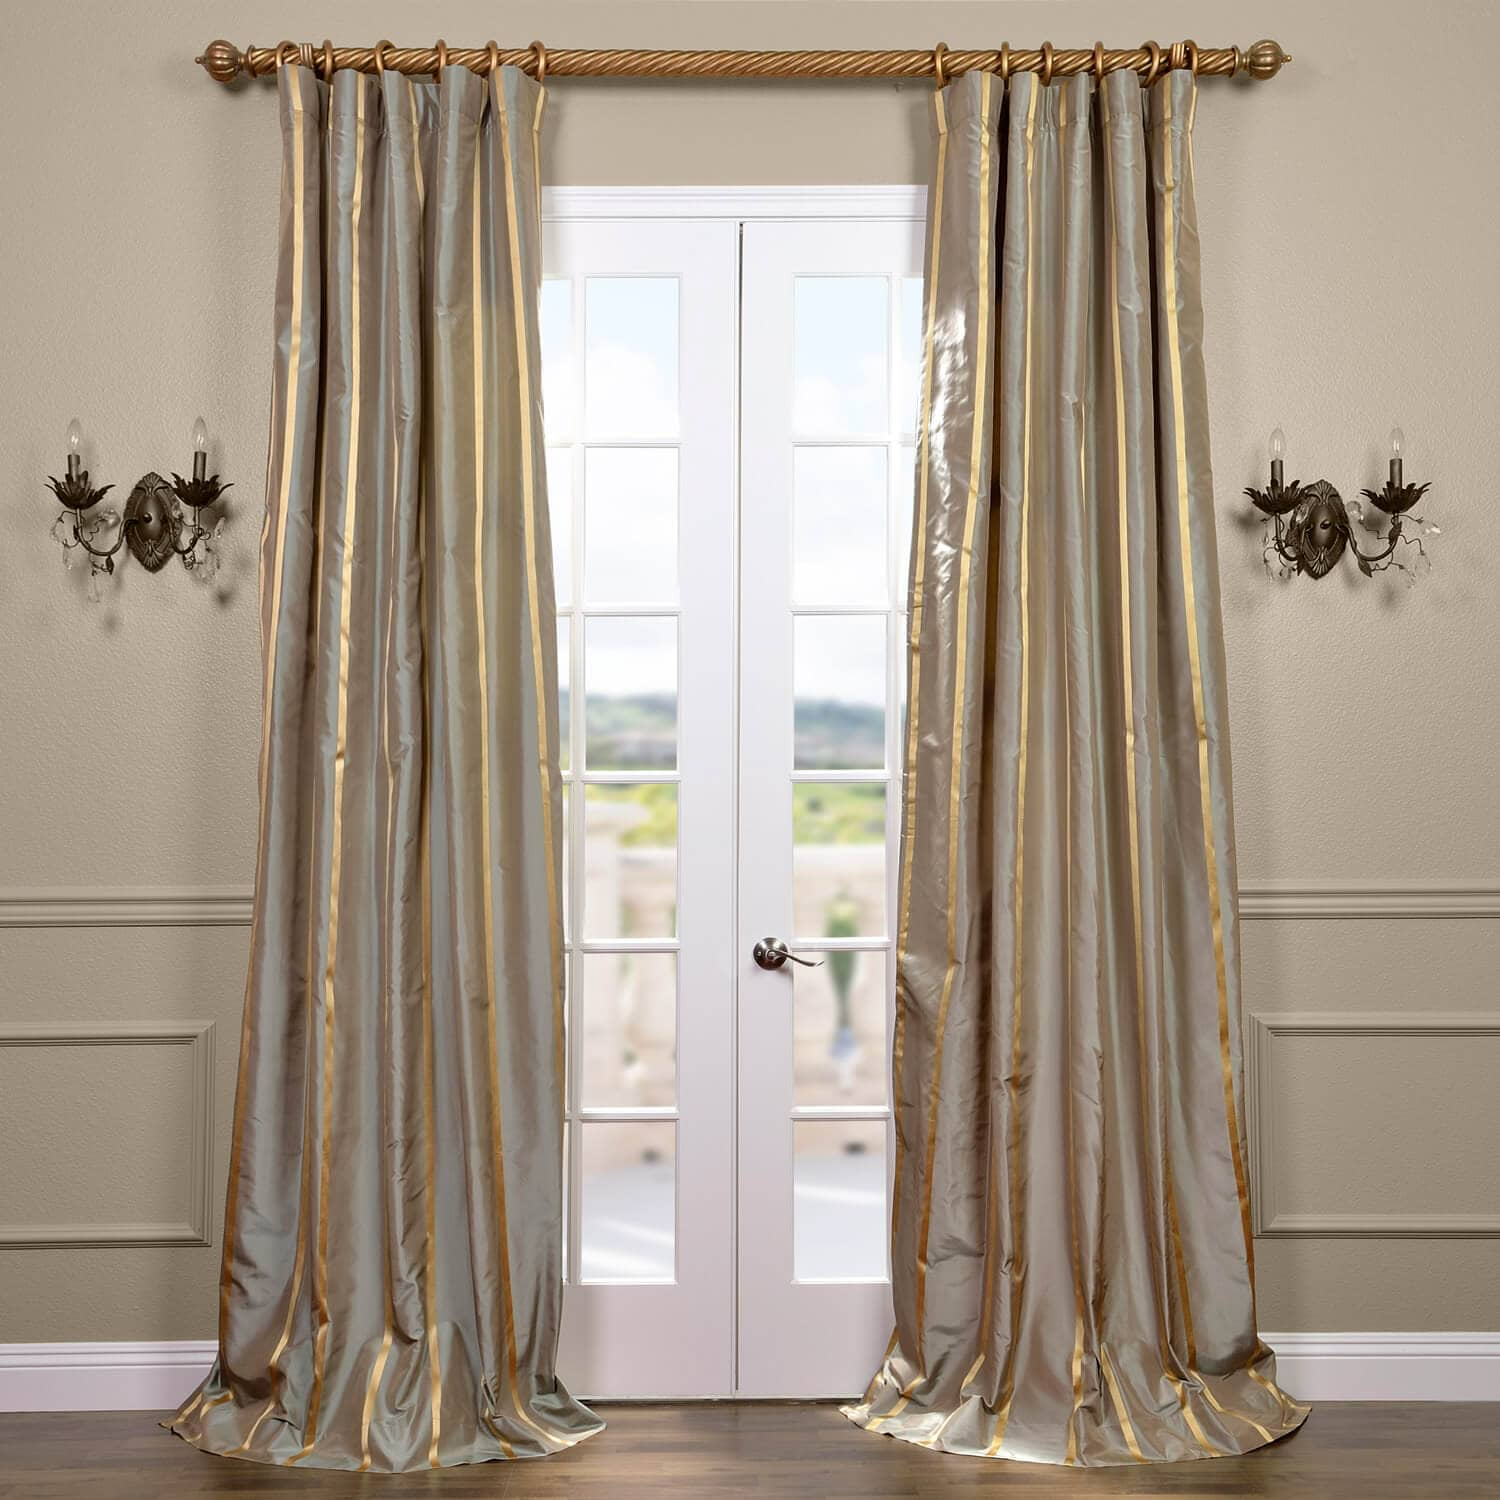 inch curtains full green dot moss long of kitchen velvet extra ready buy hunter polka eyelet cheap made drapes leaf curtain size bedroom blue